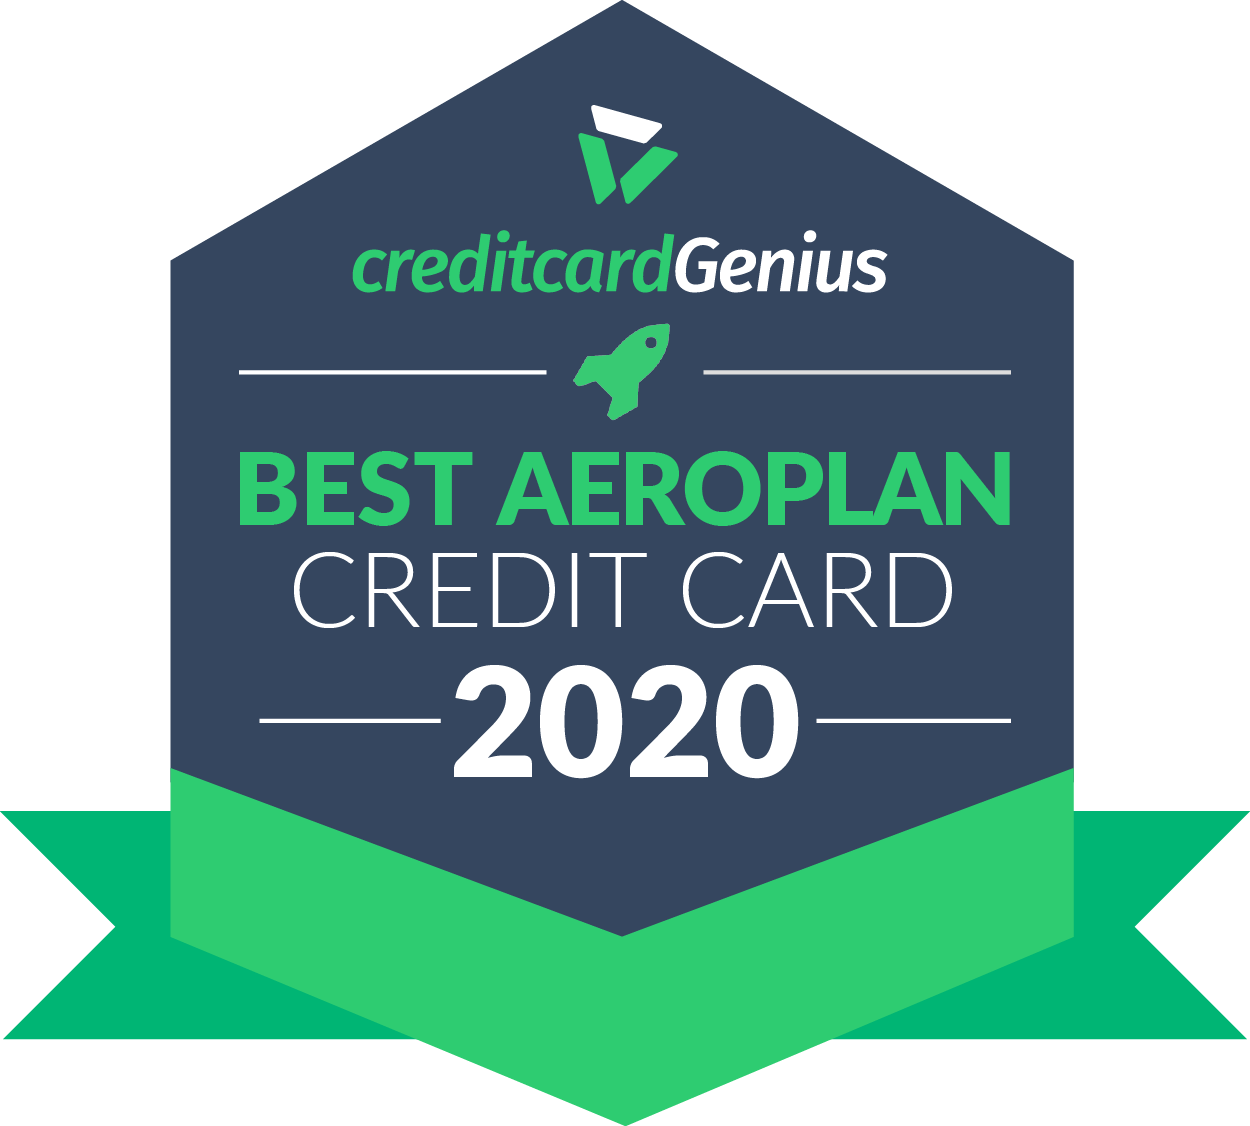 Best Aeroplan credit cards in Canada for 2020 award seal